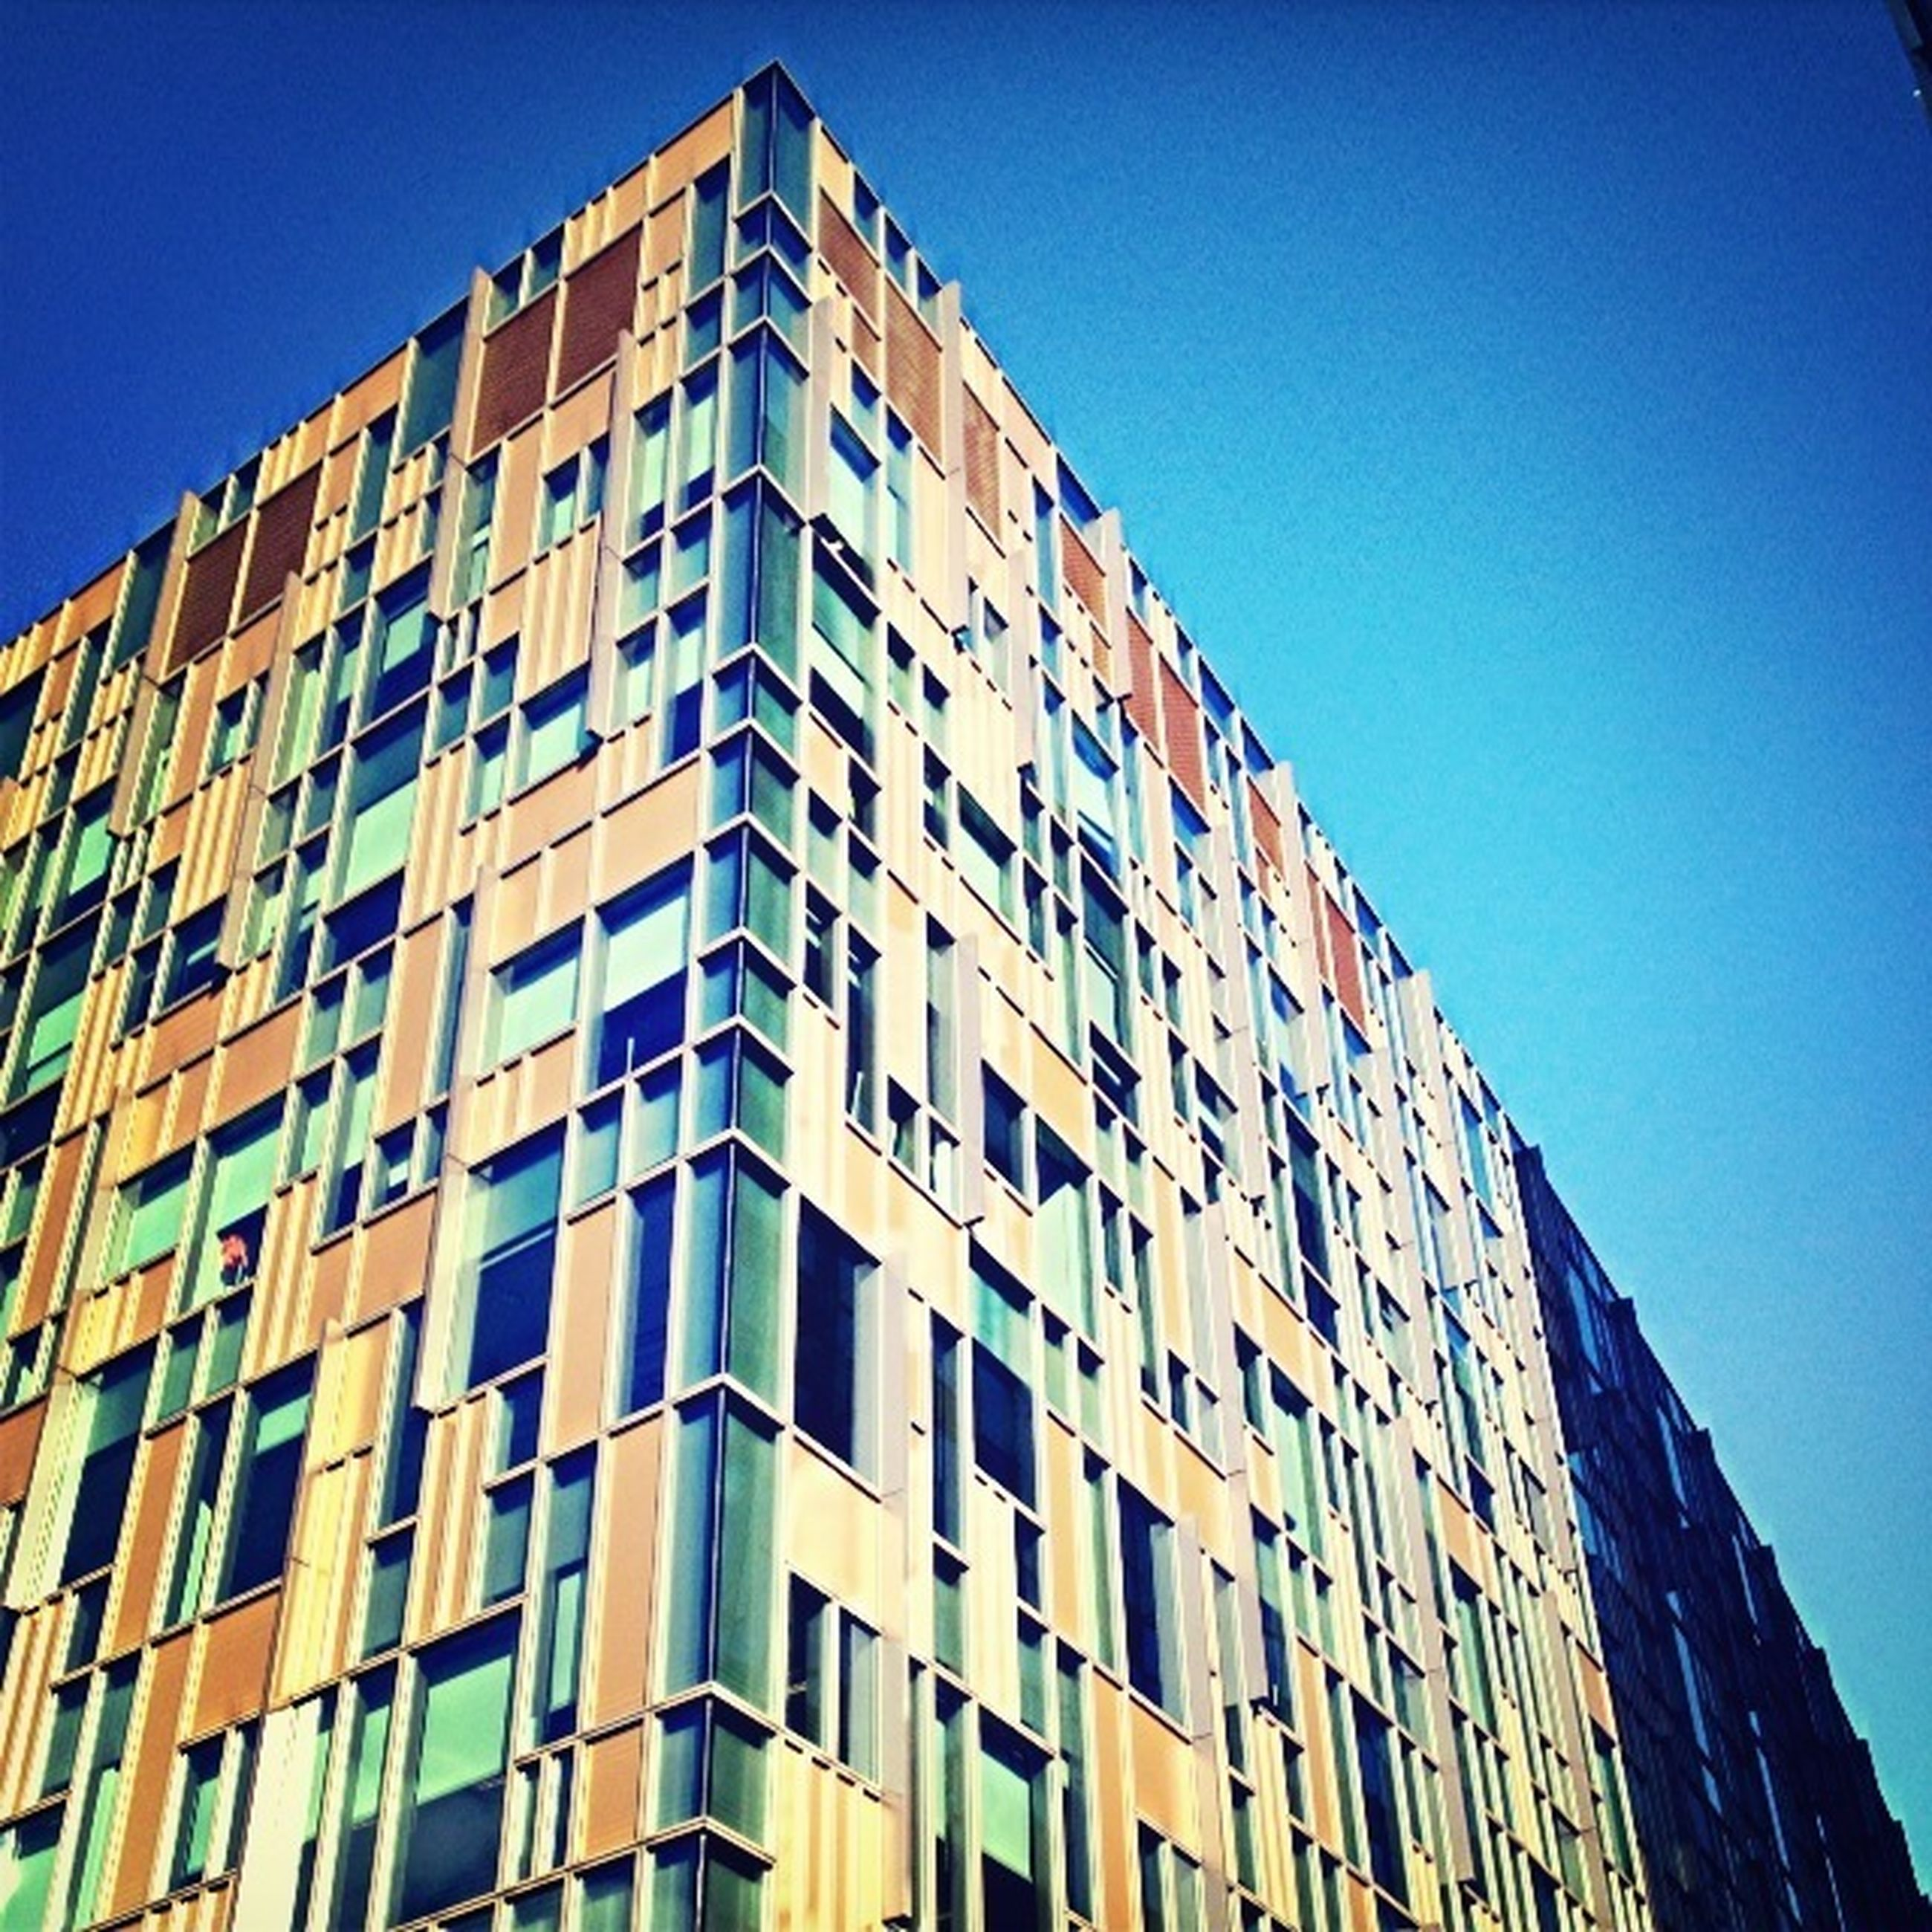 building exterior, architecture, built structure, low angle view, window, clear sky, city, building, blue, residential building, apartment, residential structure, modern, office building, balcony, outdoors, sky, city life, day, no people